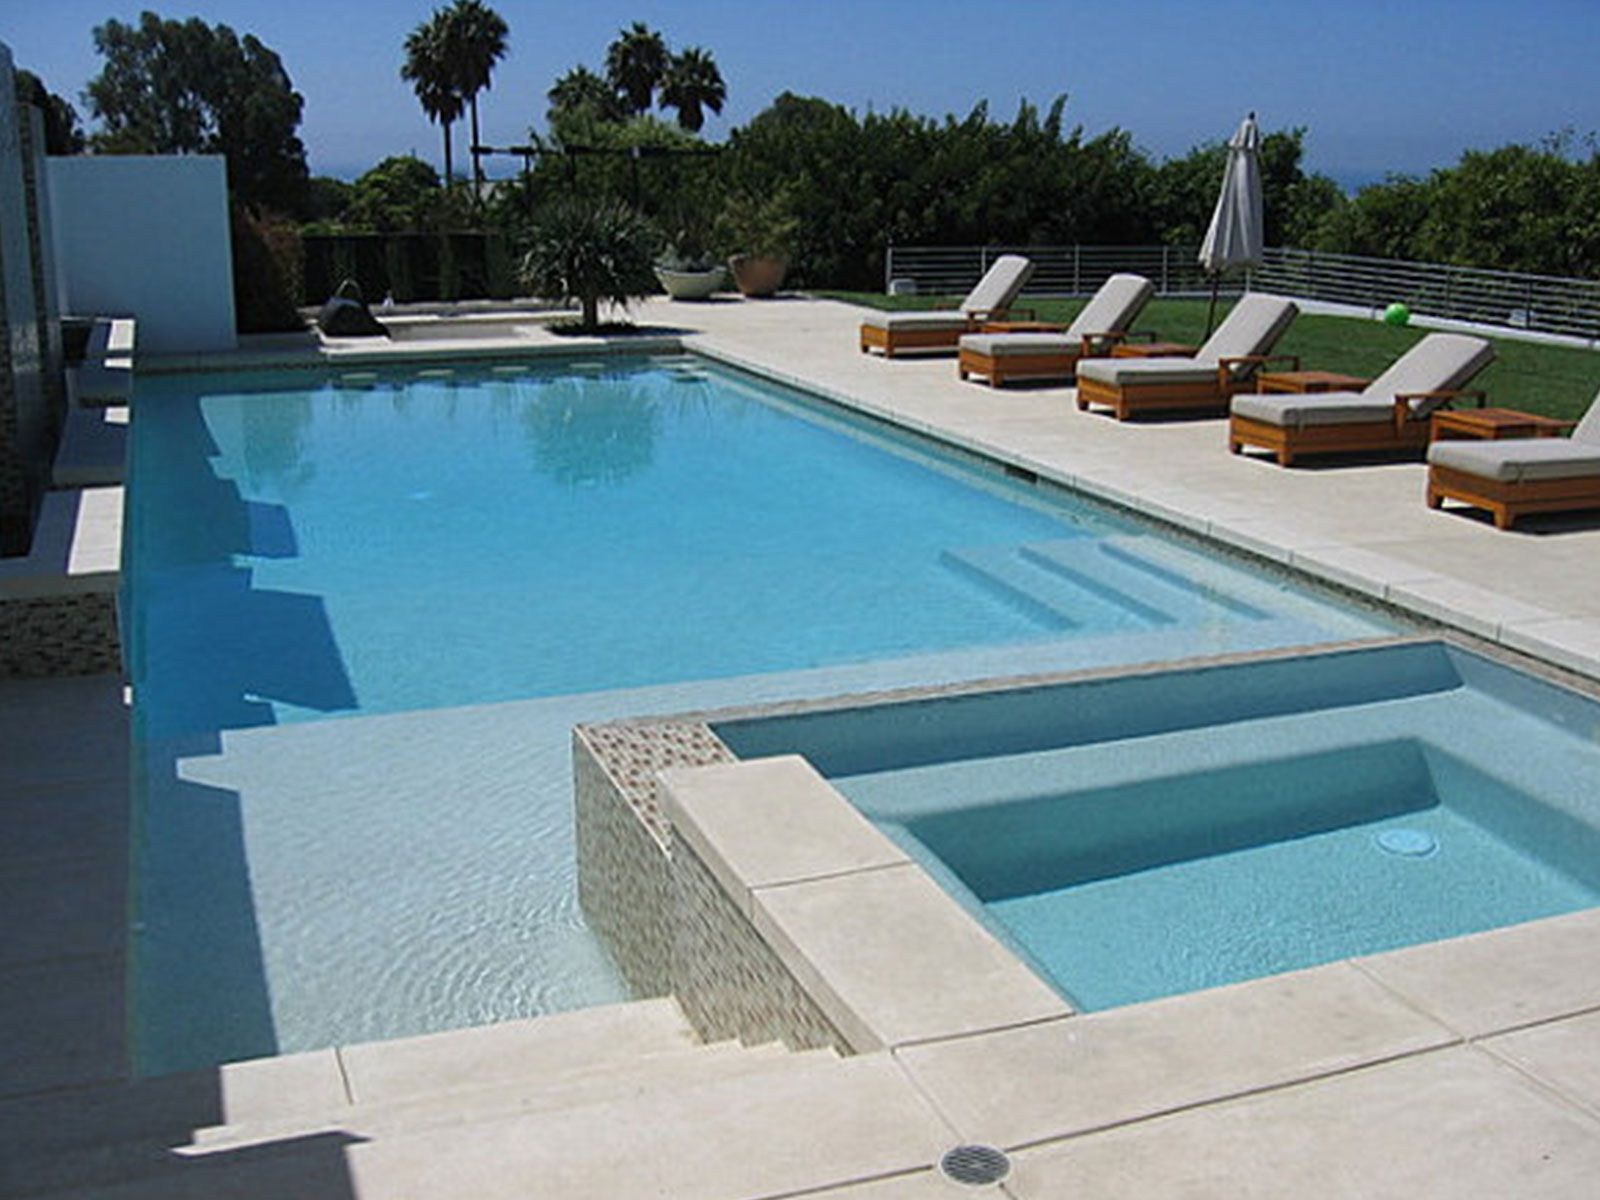 swimming pool designs and plans photo - 3